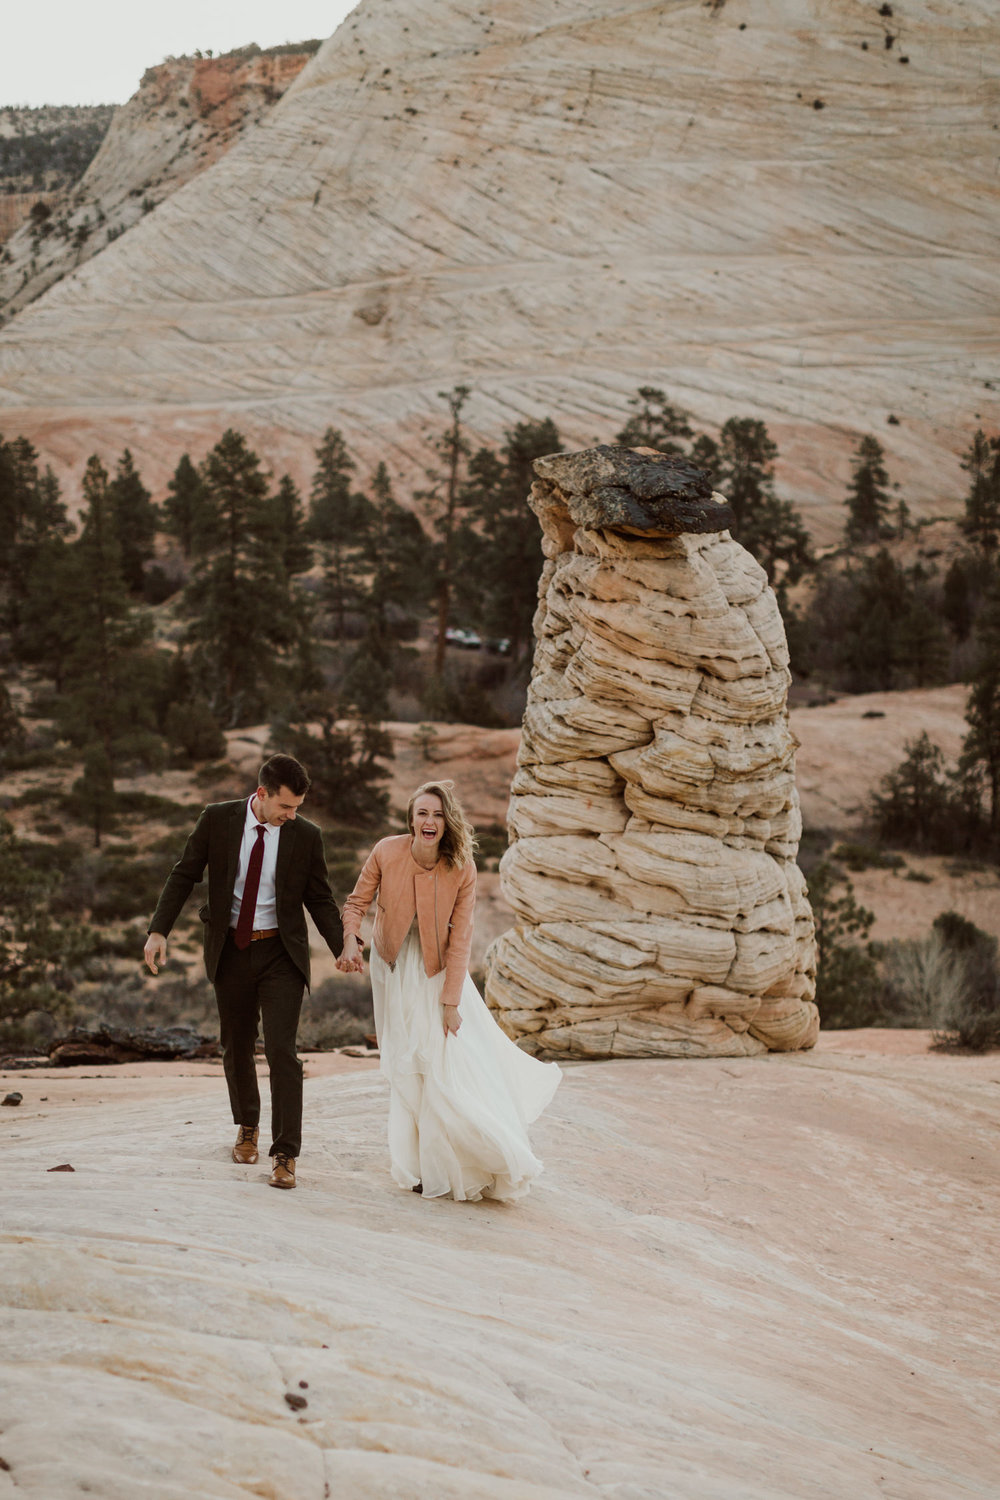 zion-national-park-wedding-38.jpg